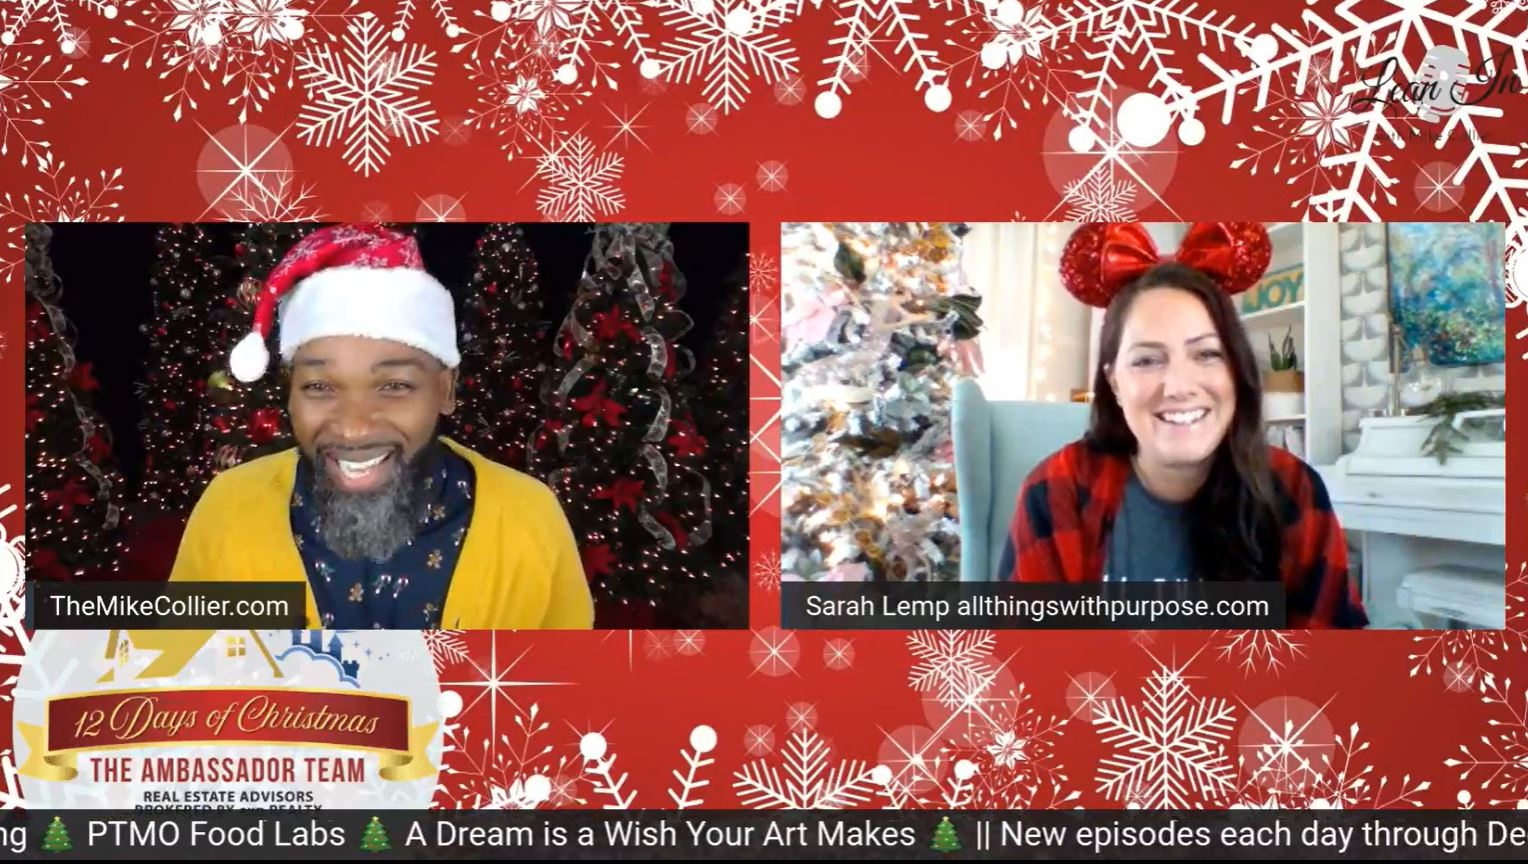 12 Days of Christmas Cast Member Marketplace All Things with Purpose Sarah Lemp 5